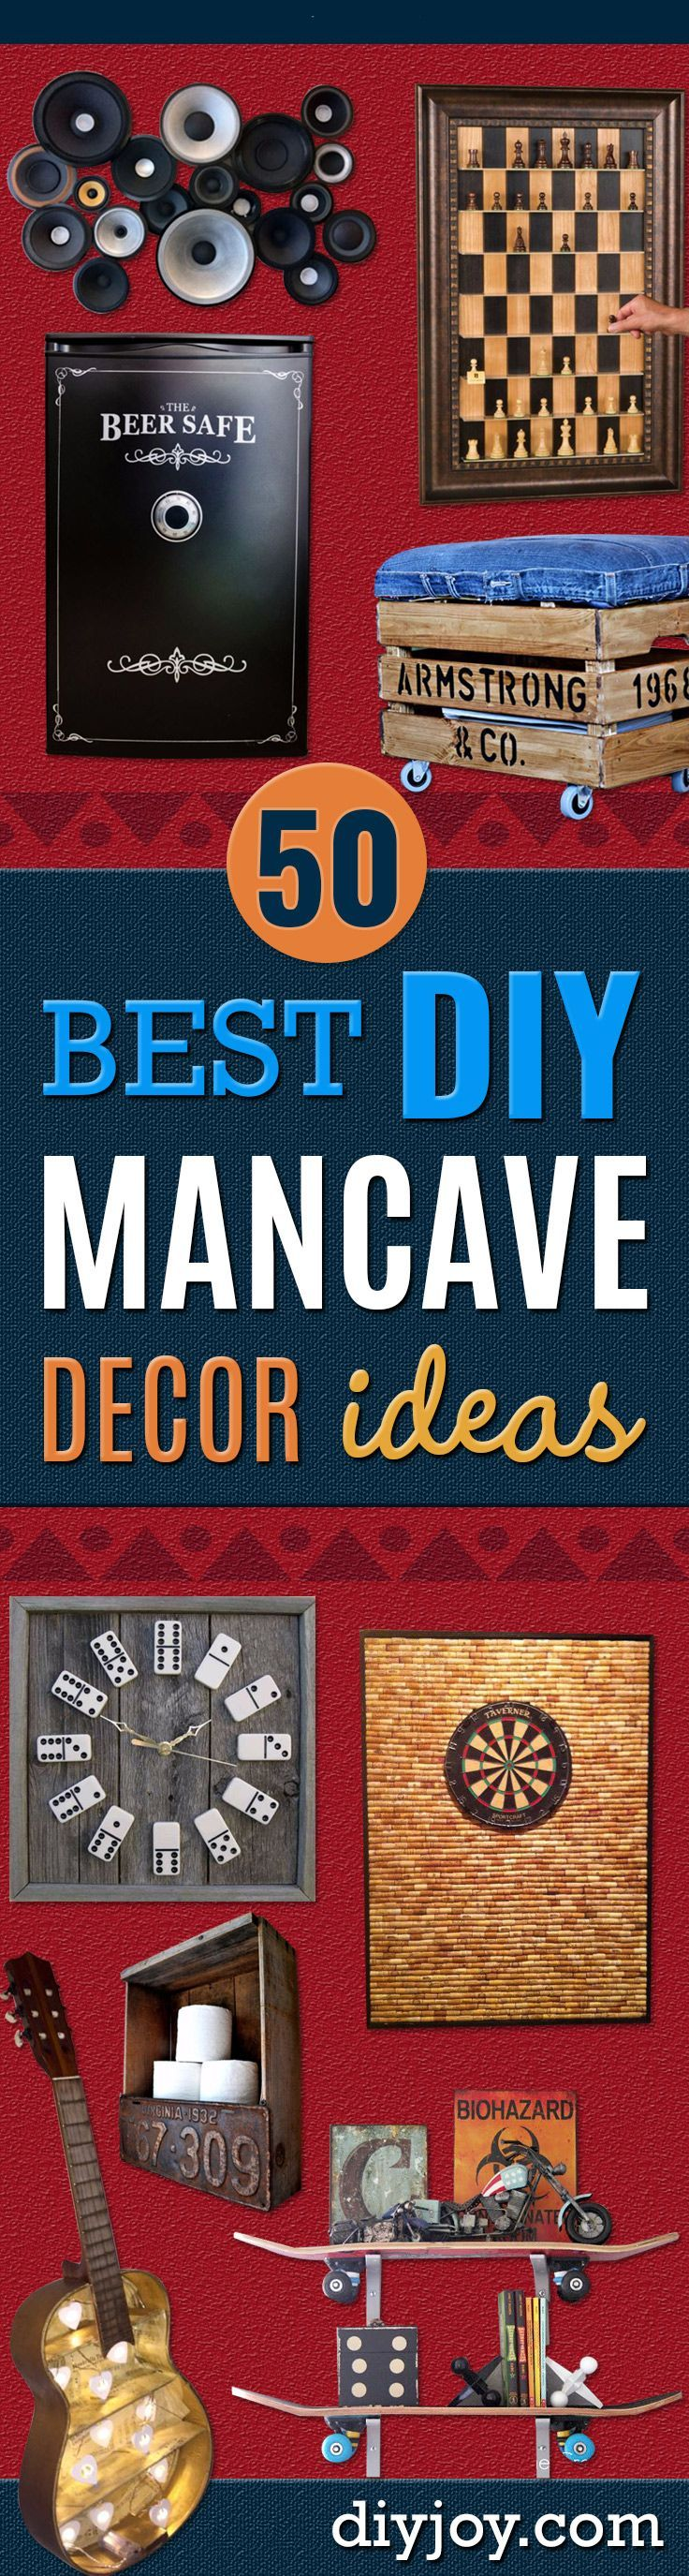 50 DIY Mancave Decor Ideas Diy projects for men, Men